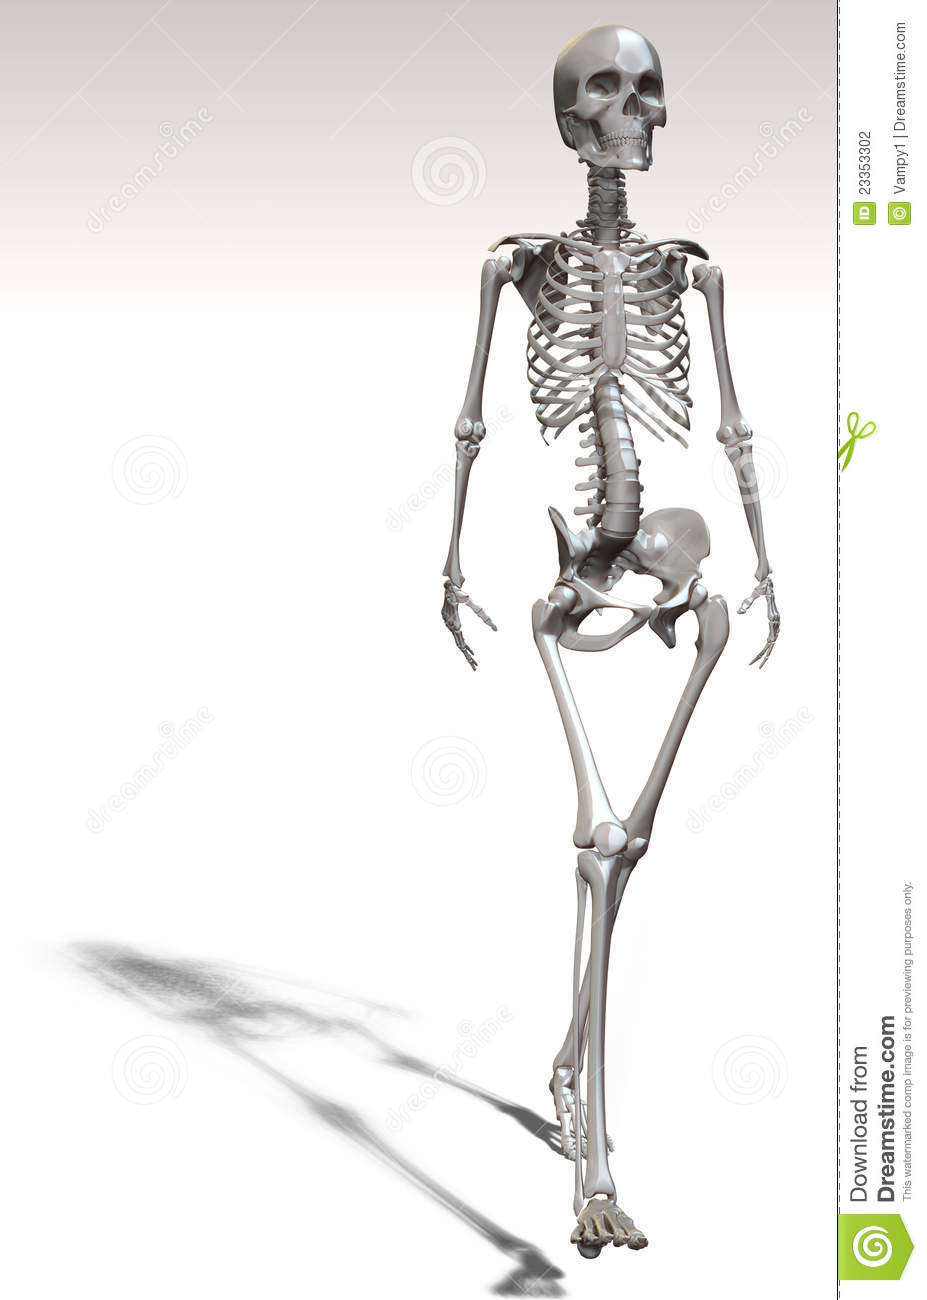 human skeleton and bones stock photography - image: 23353302, Skeleton